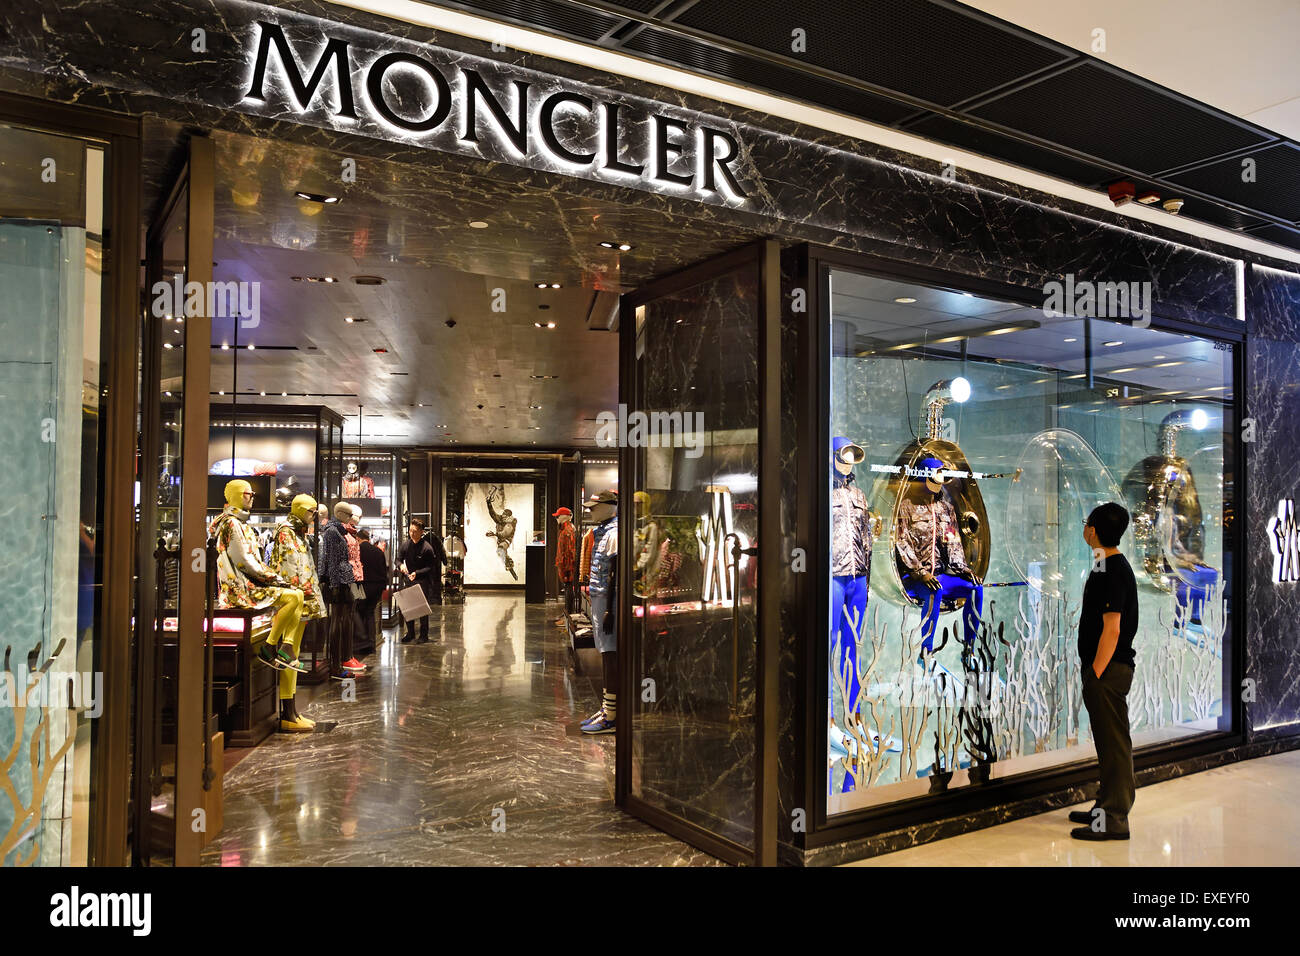 moncler france french paris fashion store kowloon tsim sha tsui stock photo royalty free. Black Bedroom Furniture Sets. Home Design Ideas